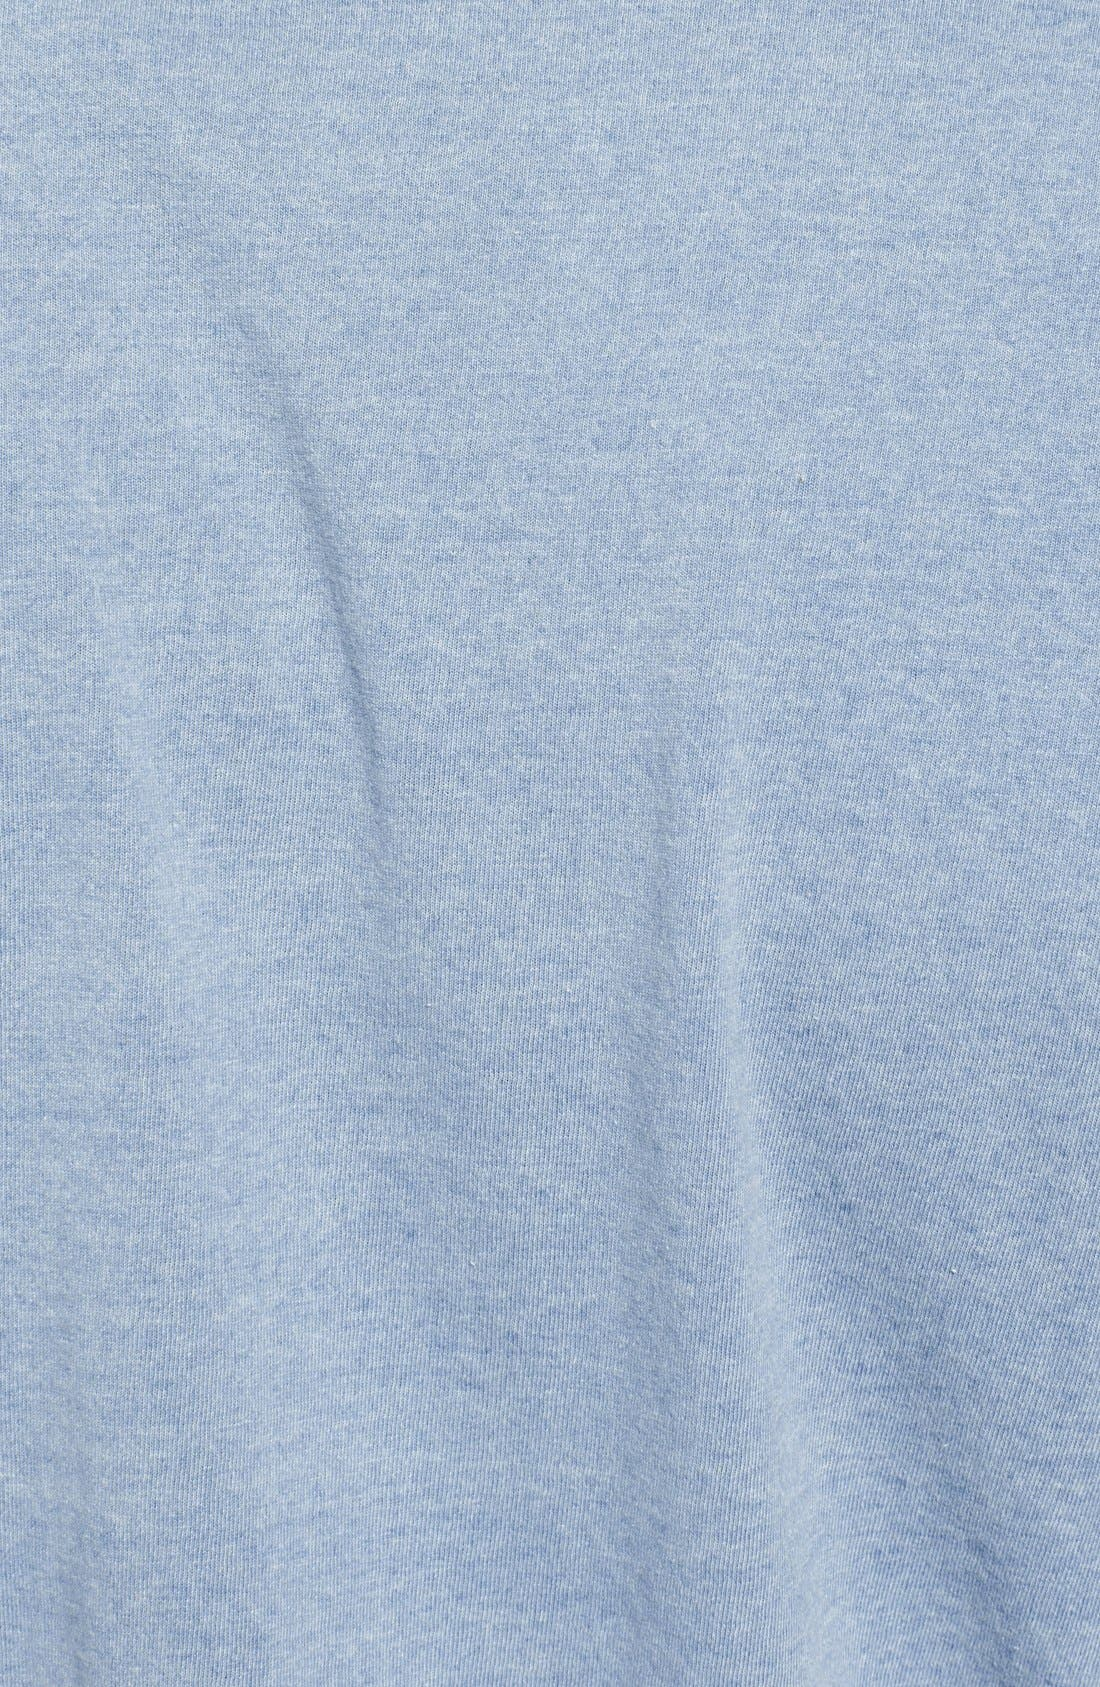 Alternate Image 3  - Faherty Raglan Sleeve Baseball T-Shirt